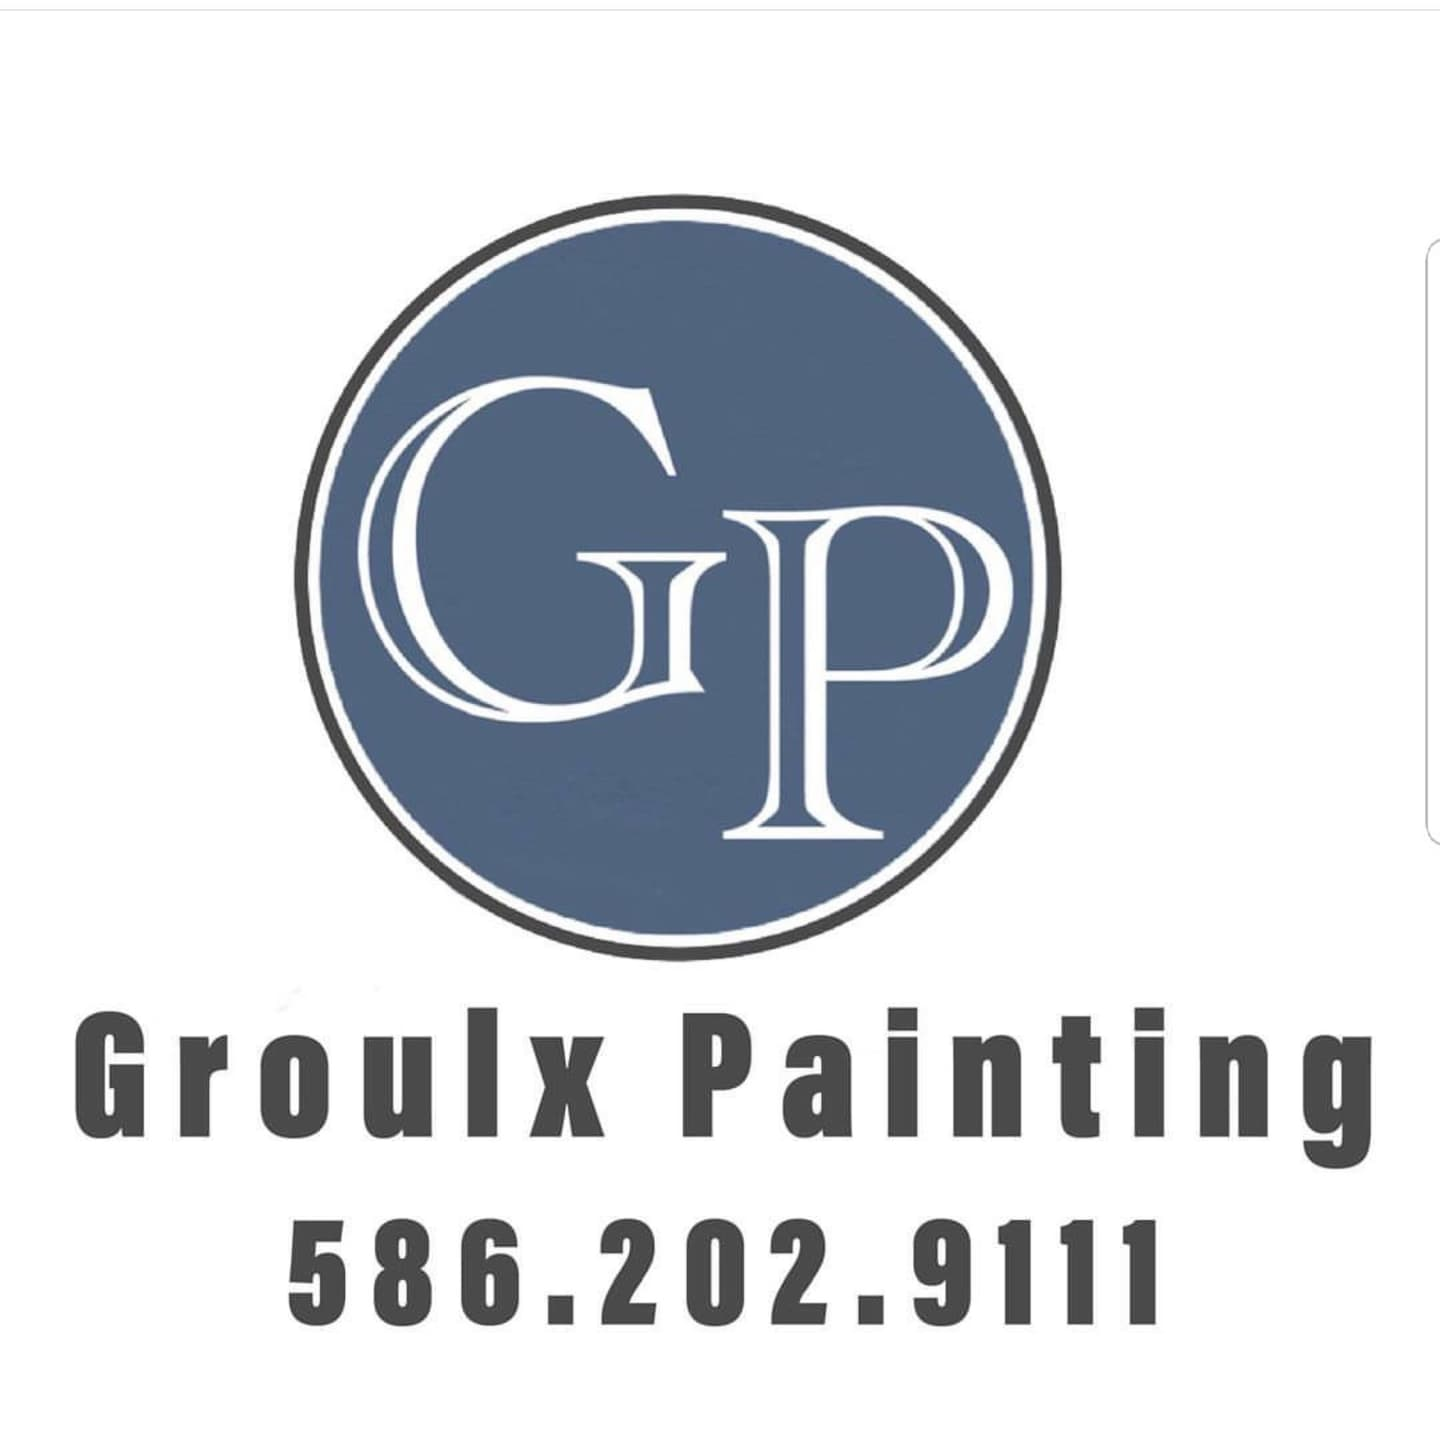 Groulx Painting LLC